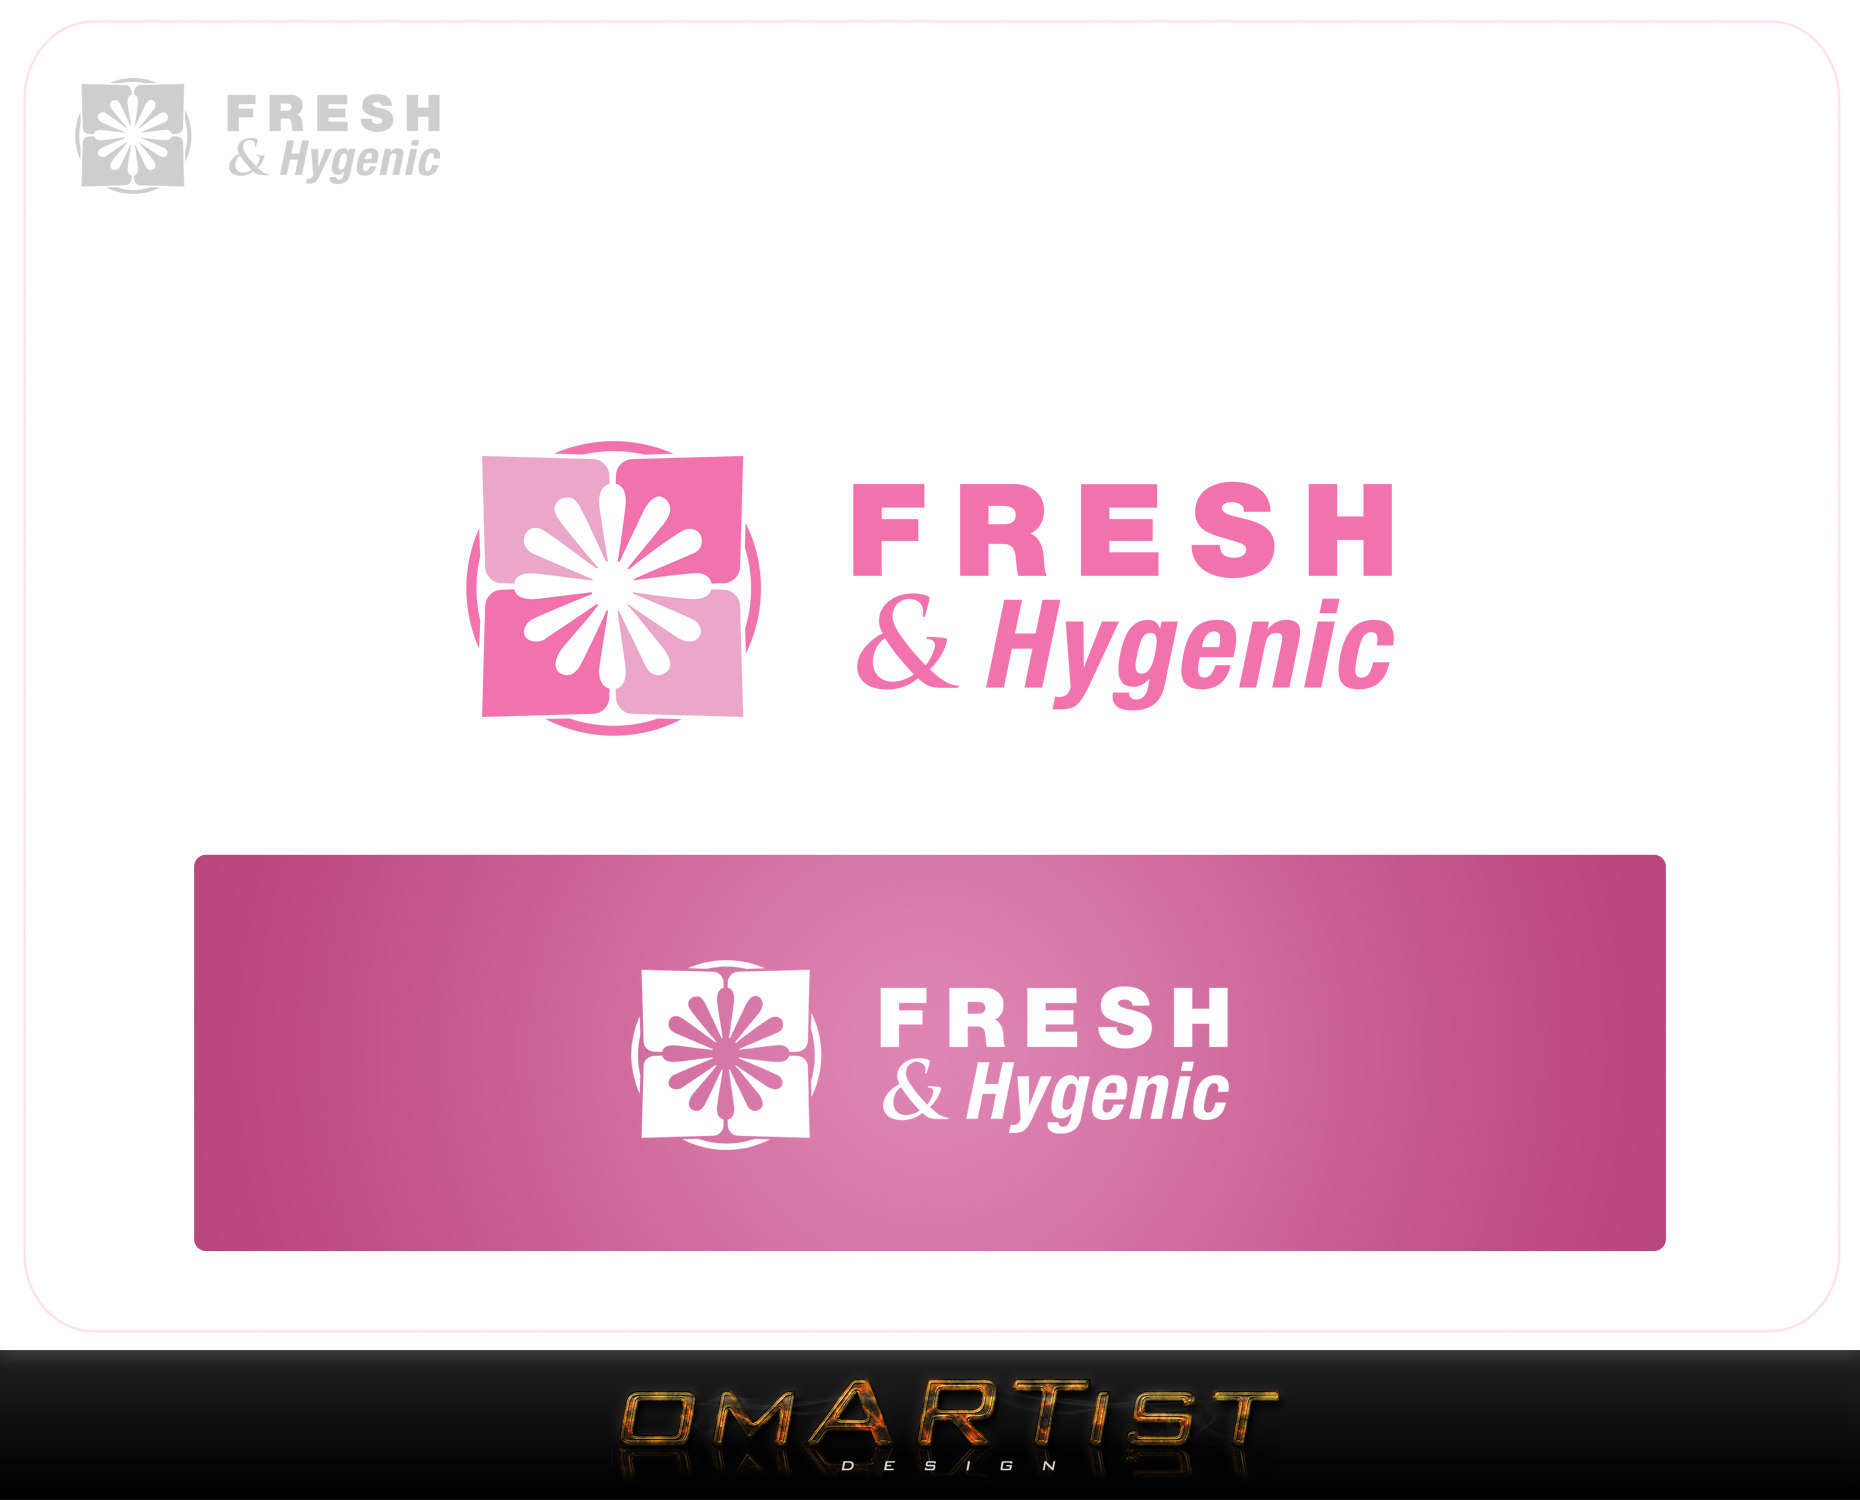 Logo Design by omARTist - Entry No. 141 in the Logo Design Contest Fun Logo Design for Fresh & Hygenic.